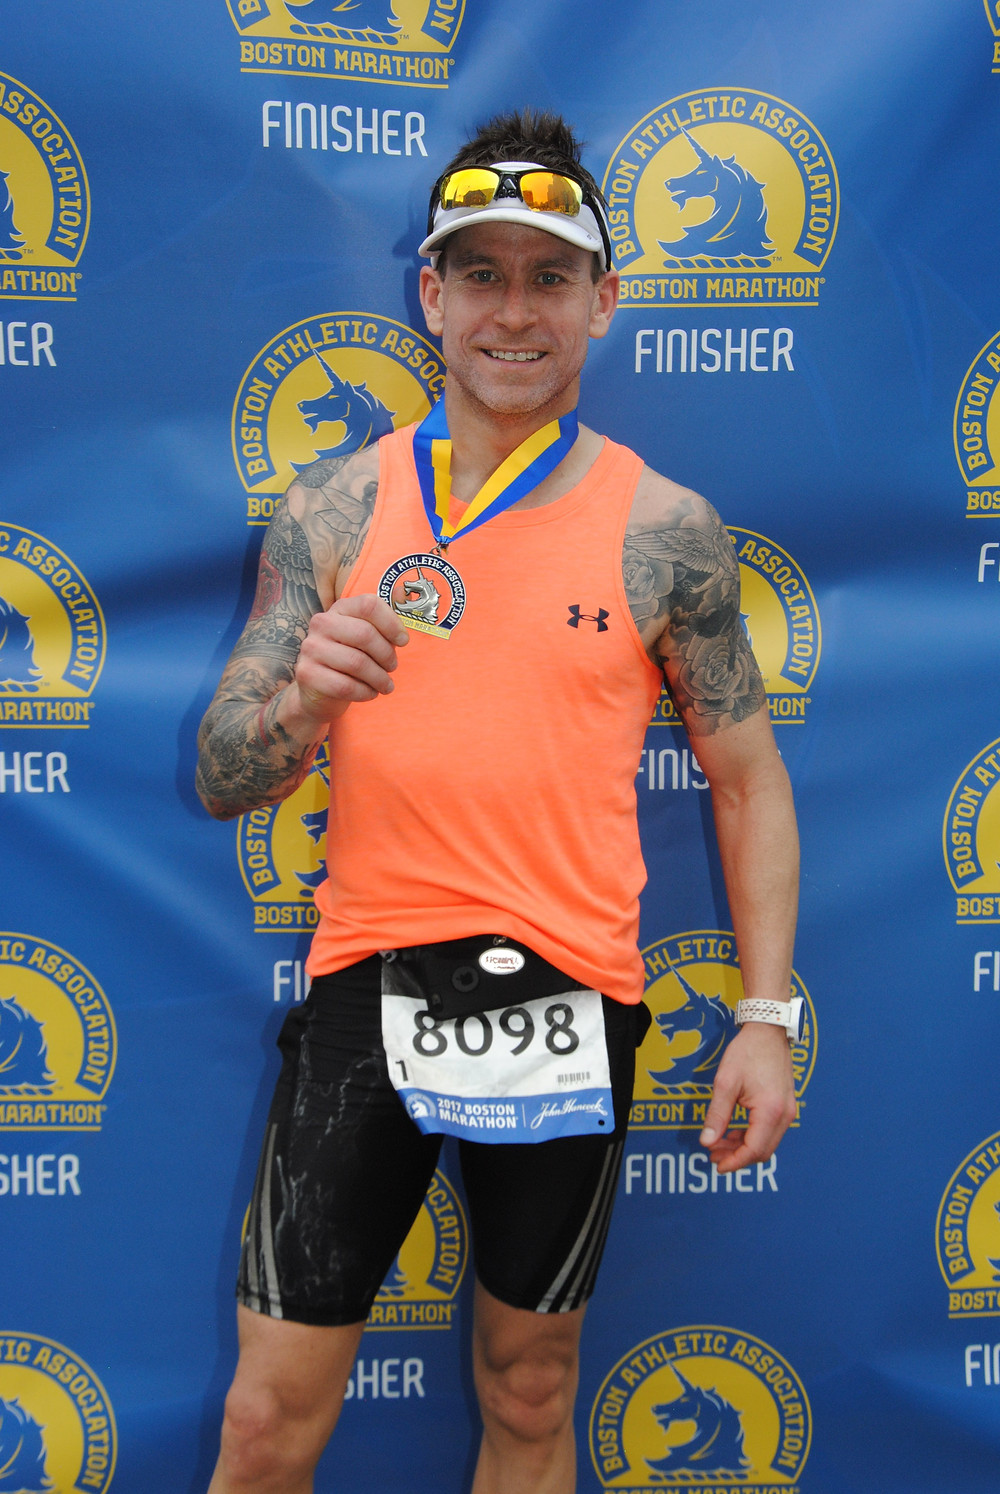 Boston Marathon - Ian Aman